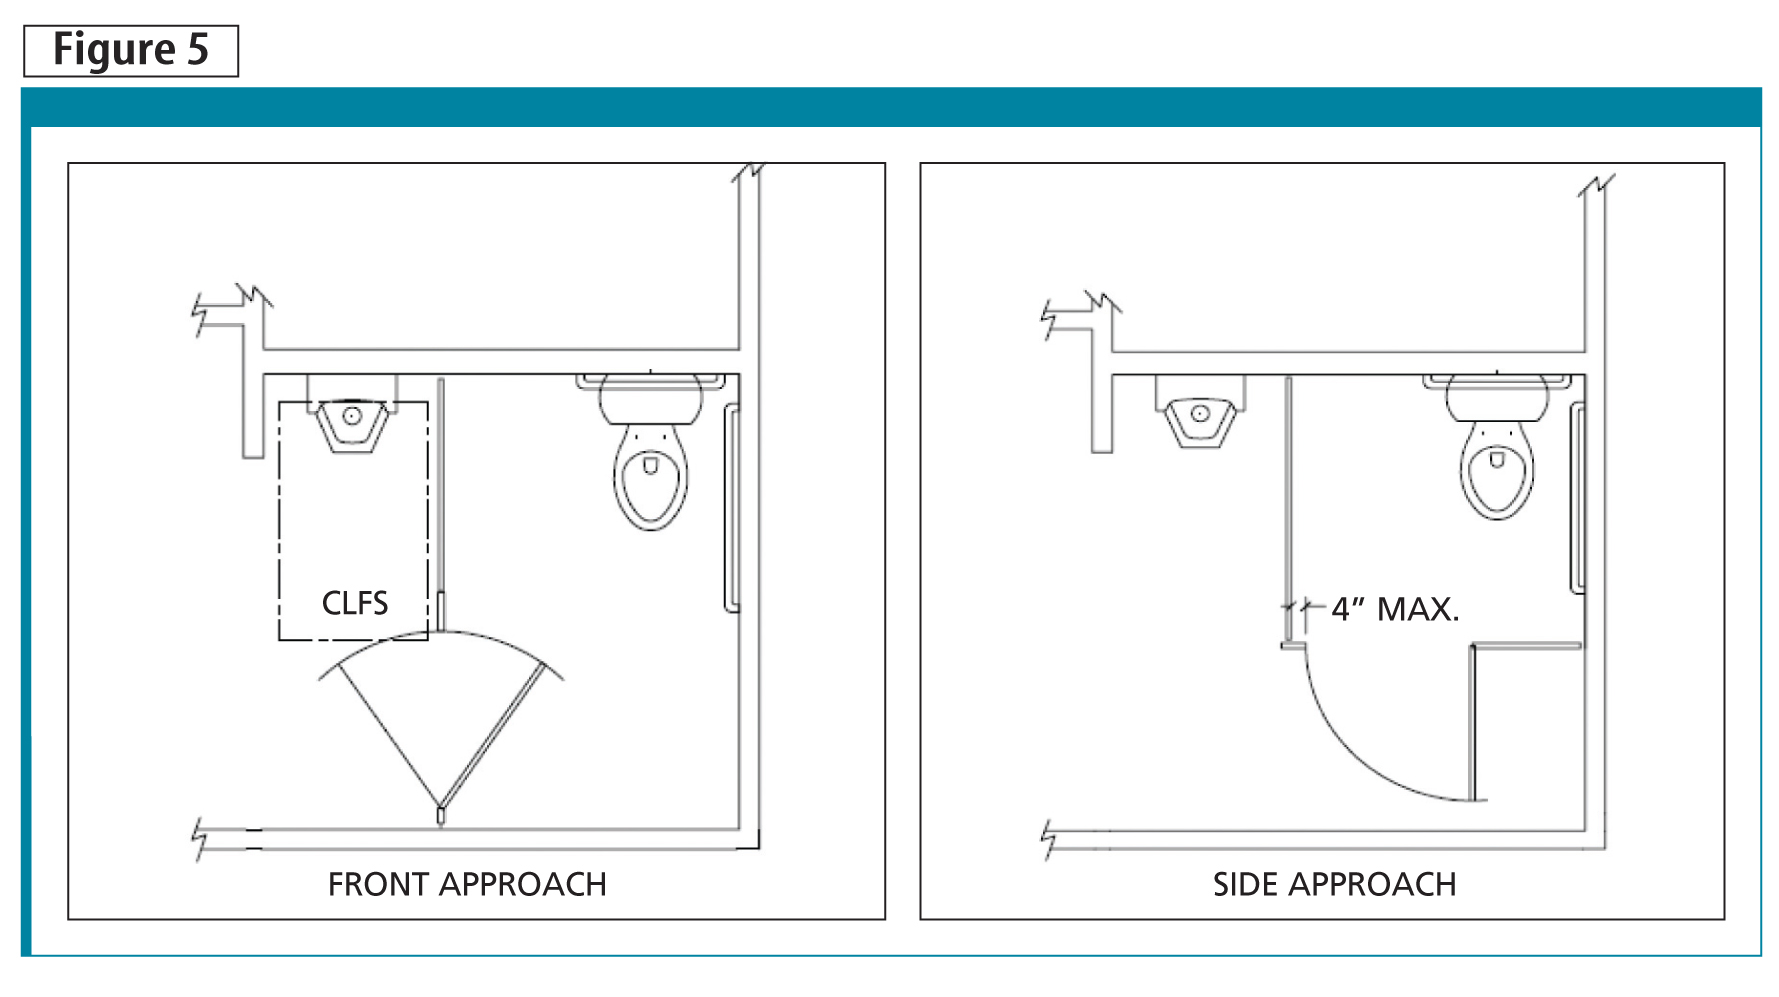 Normal Bathroom Stall Size a practical guide to barrier-free washrooms - construction canada